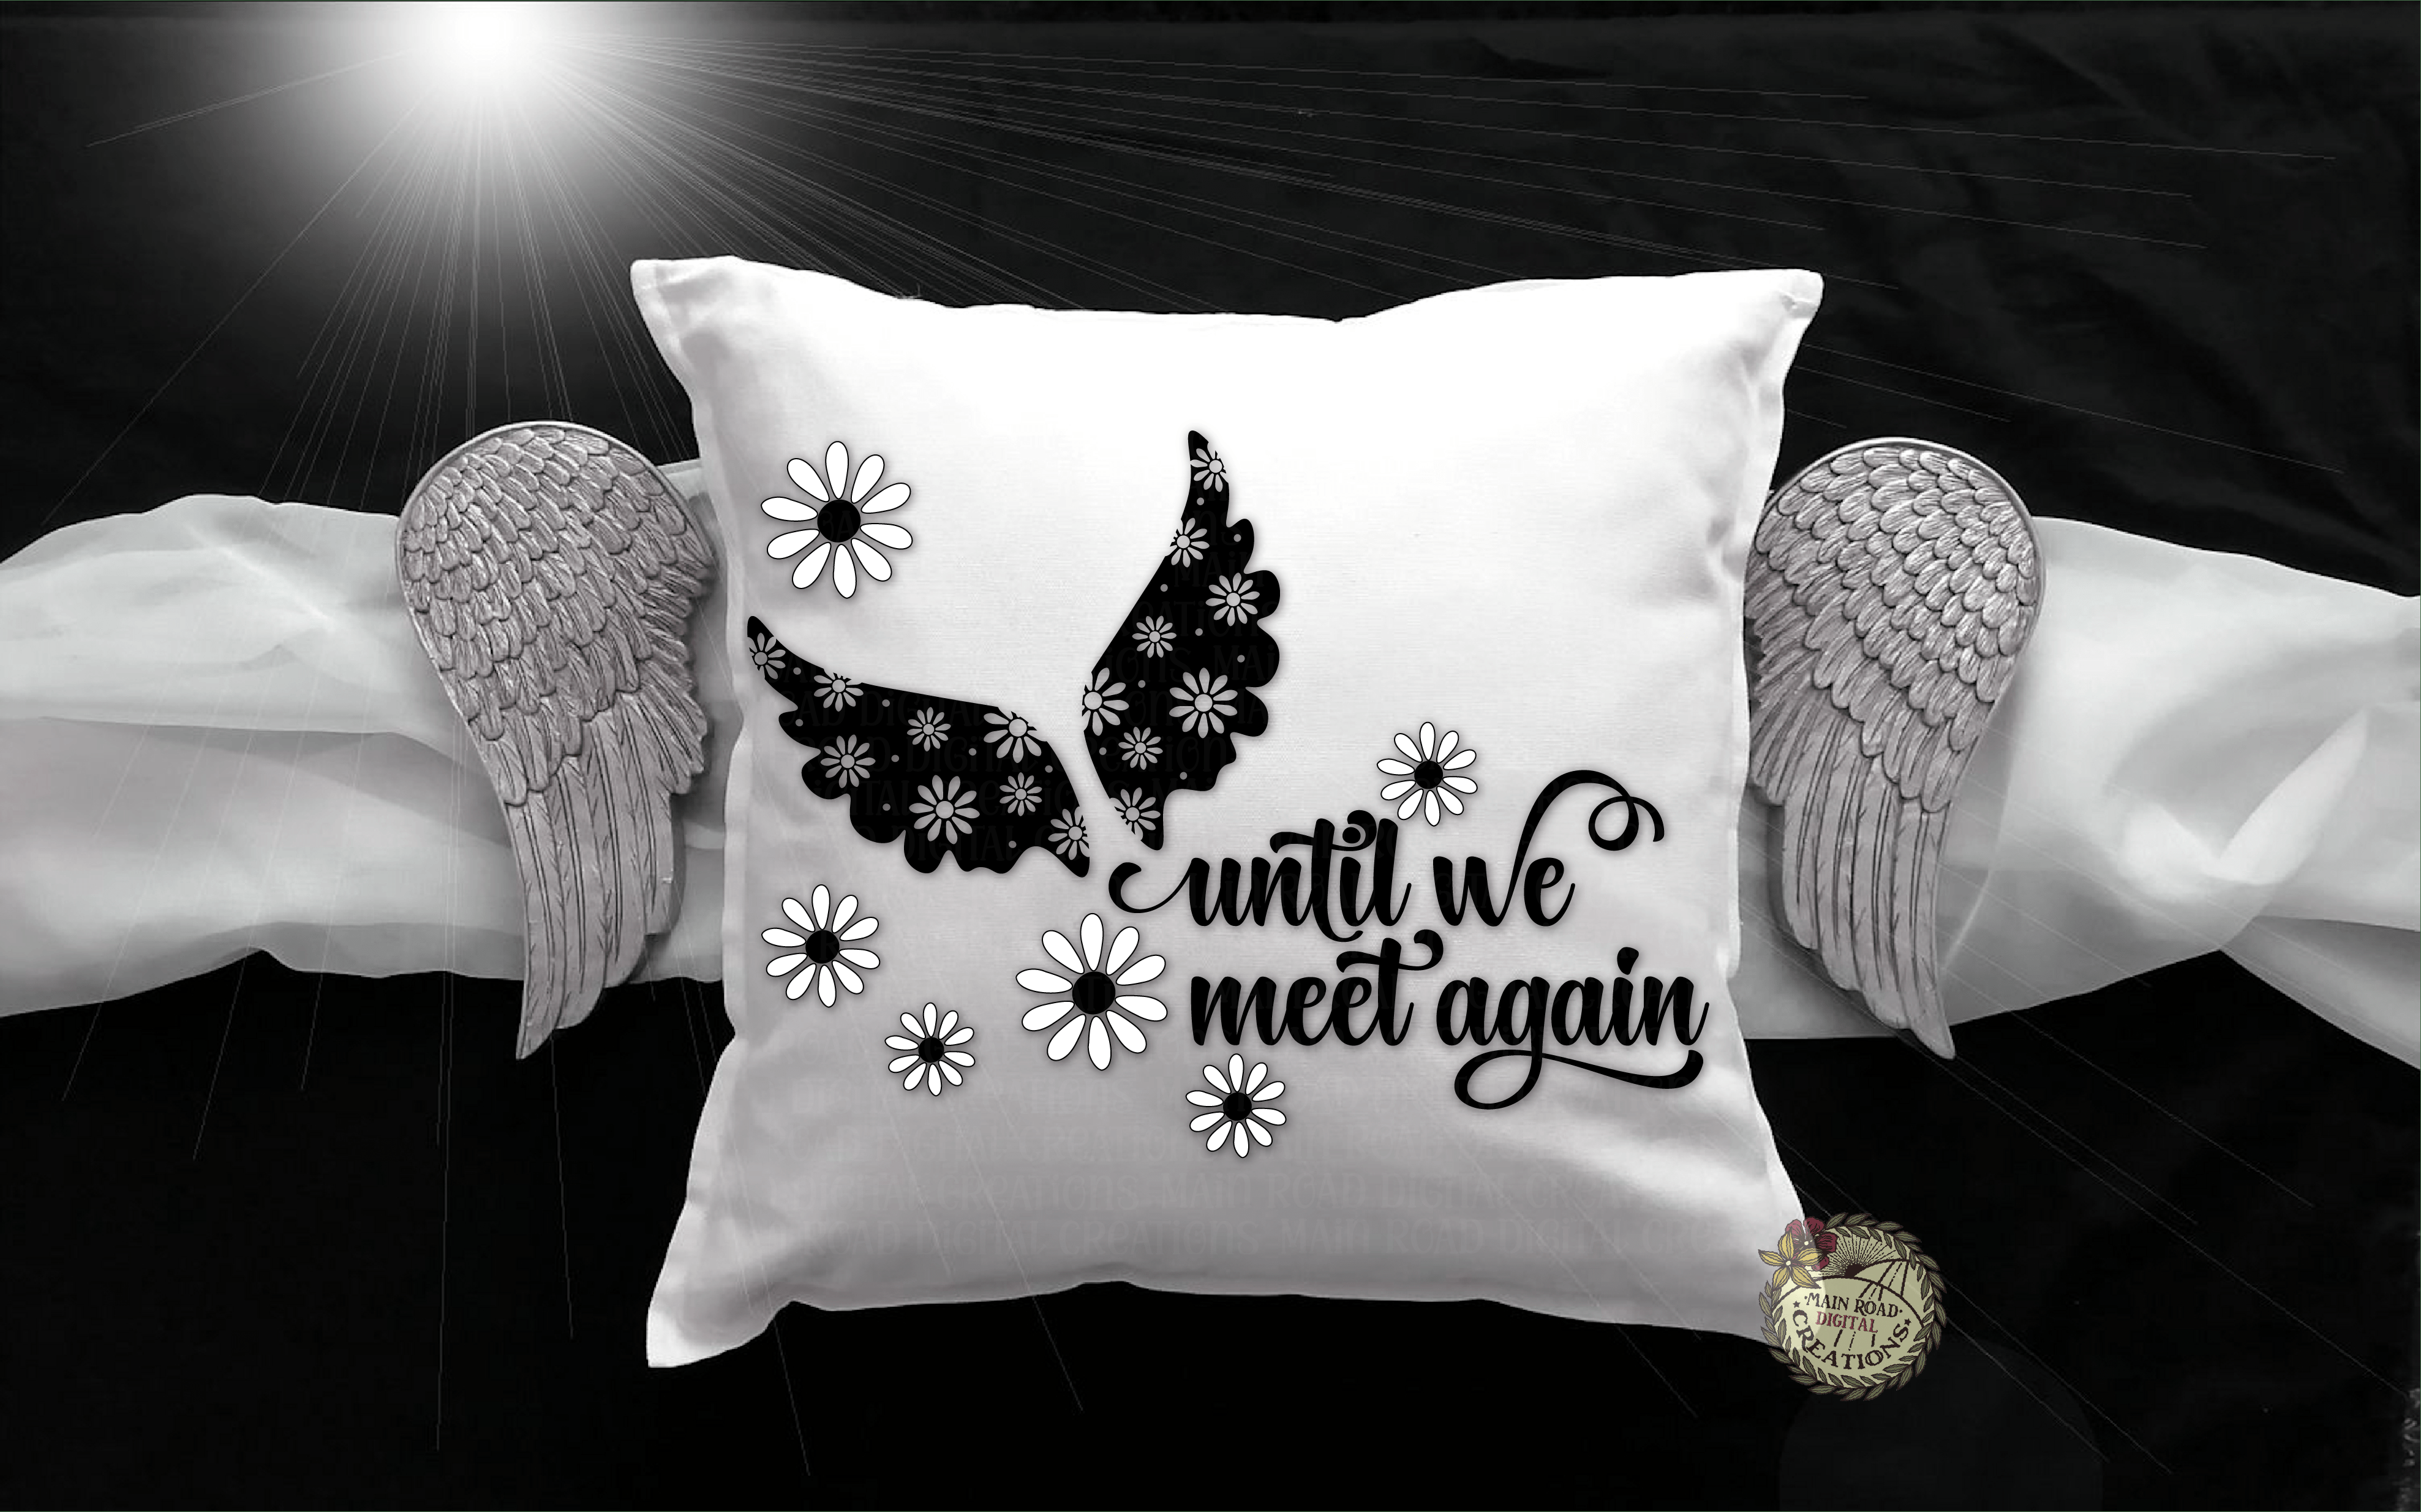 free memorial svg on pillow